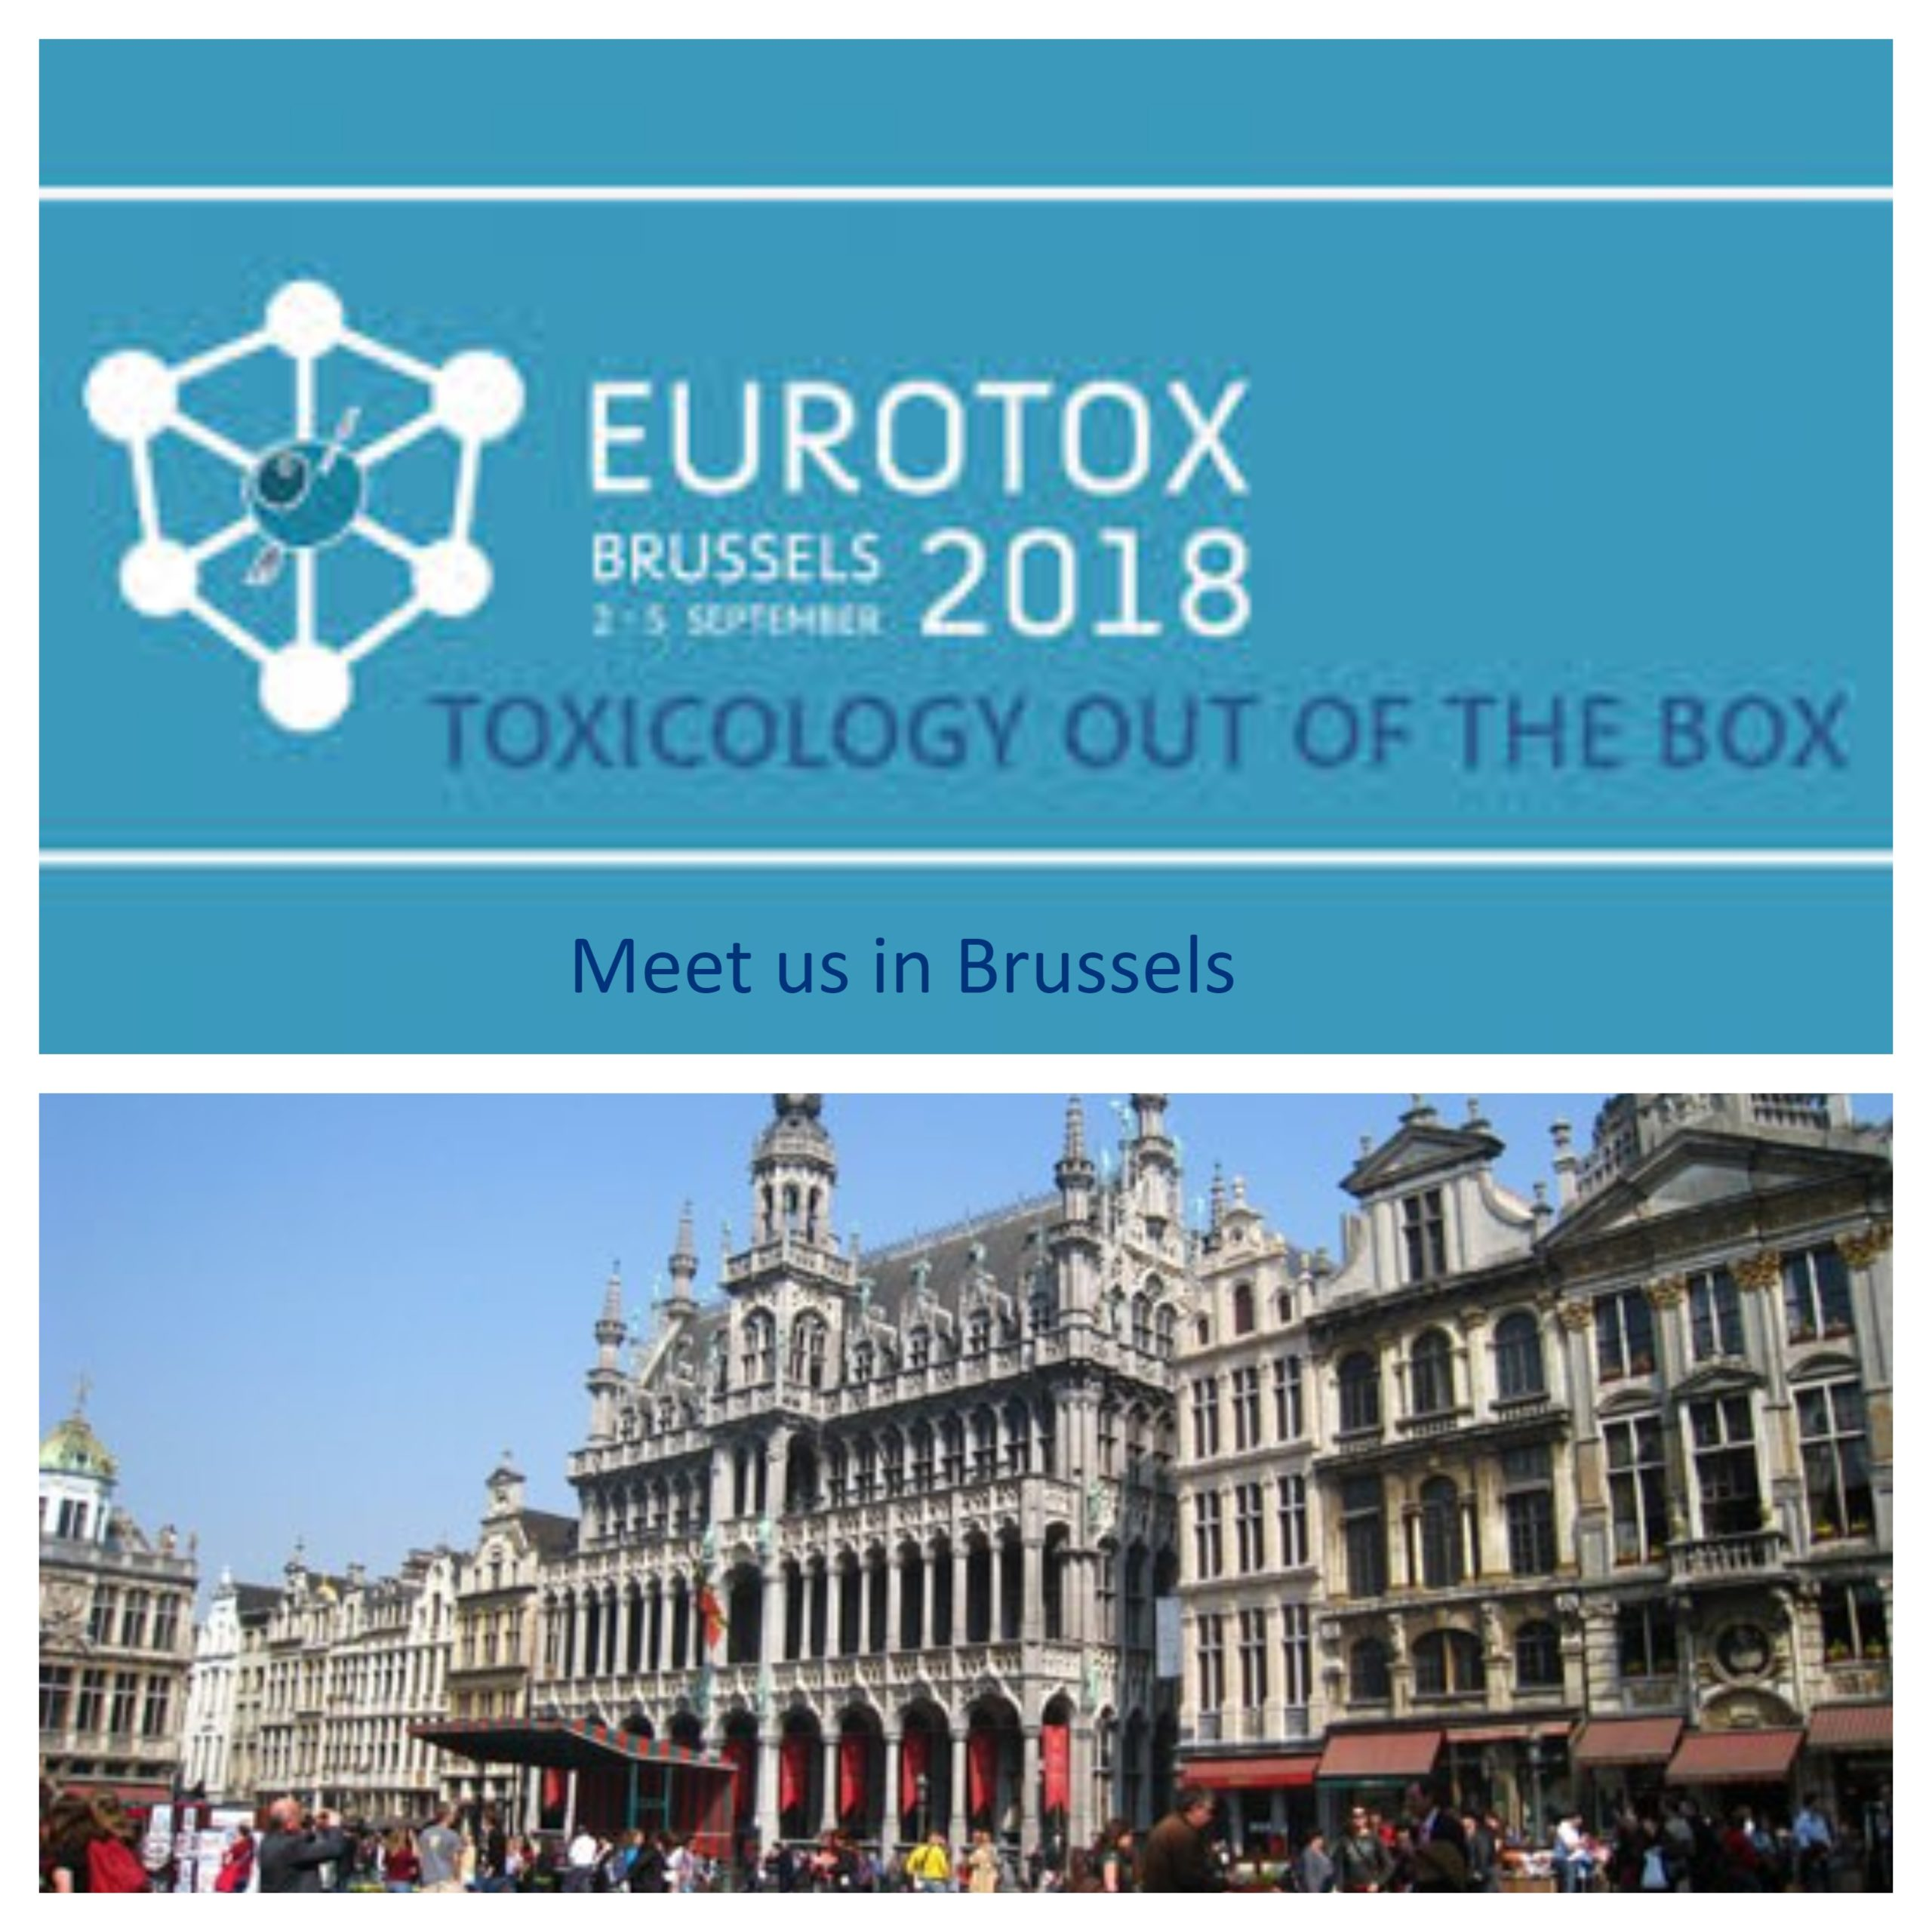 Meet BiologicsHub Team In Brussels In September